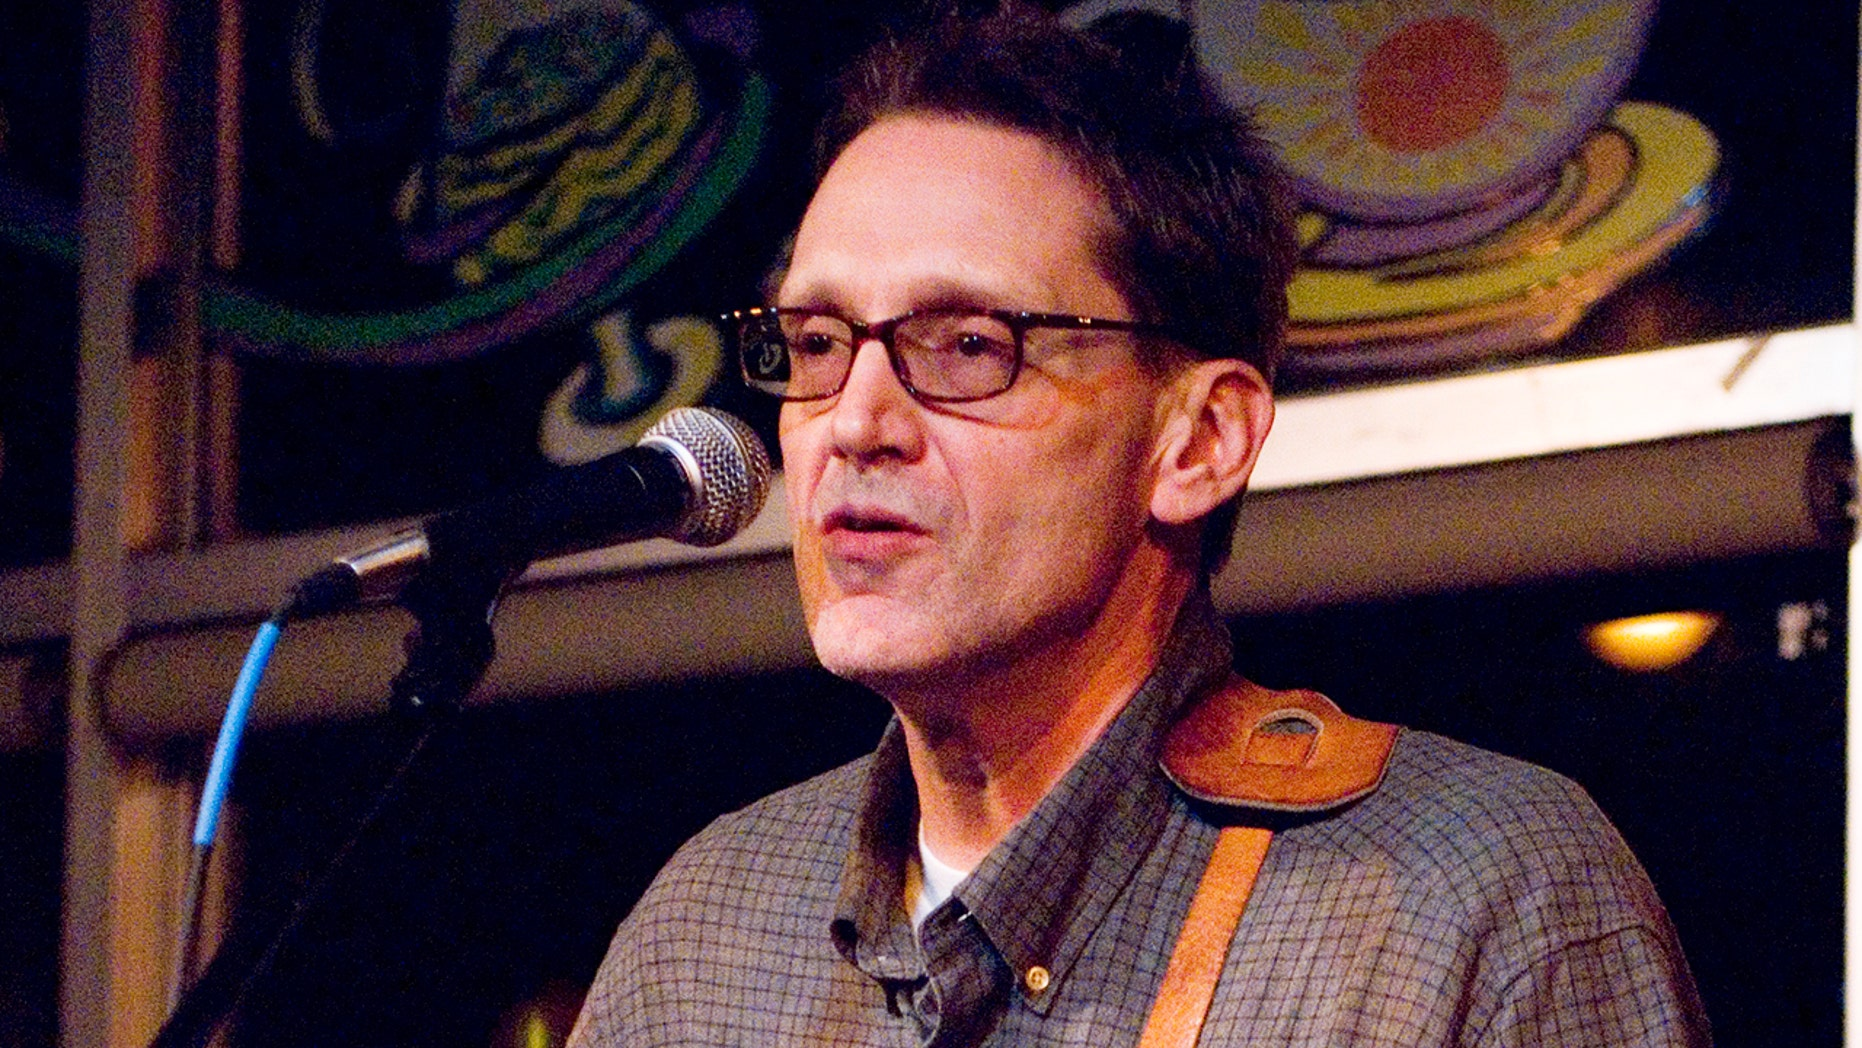 John Kilzer performing at Otherland's Coffee House in Memphis, Tennessee on November 17, 2006.?